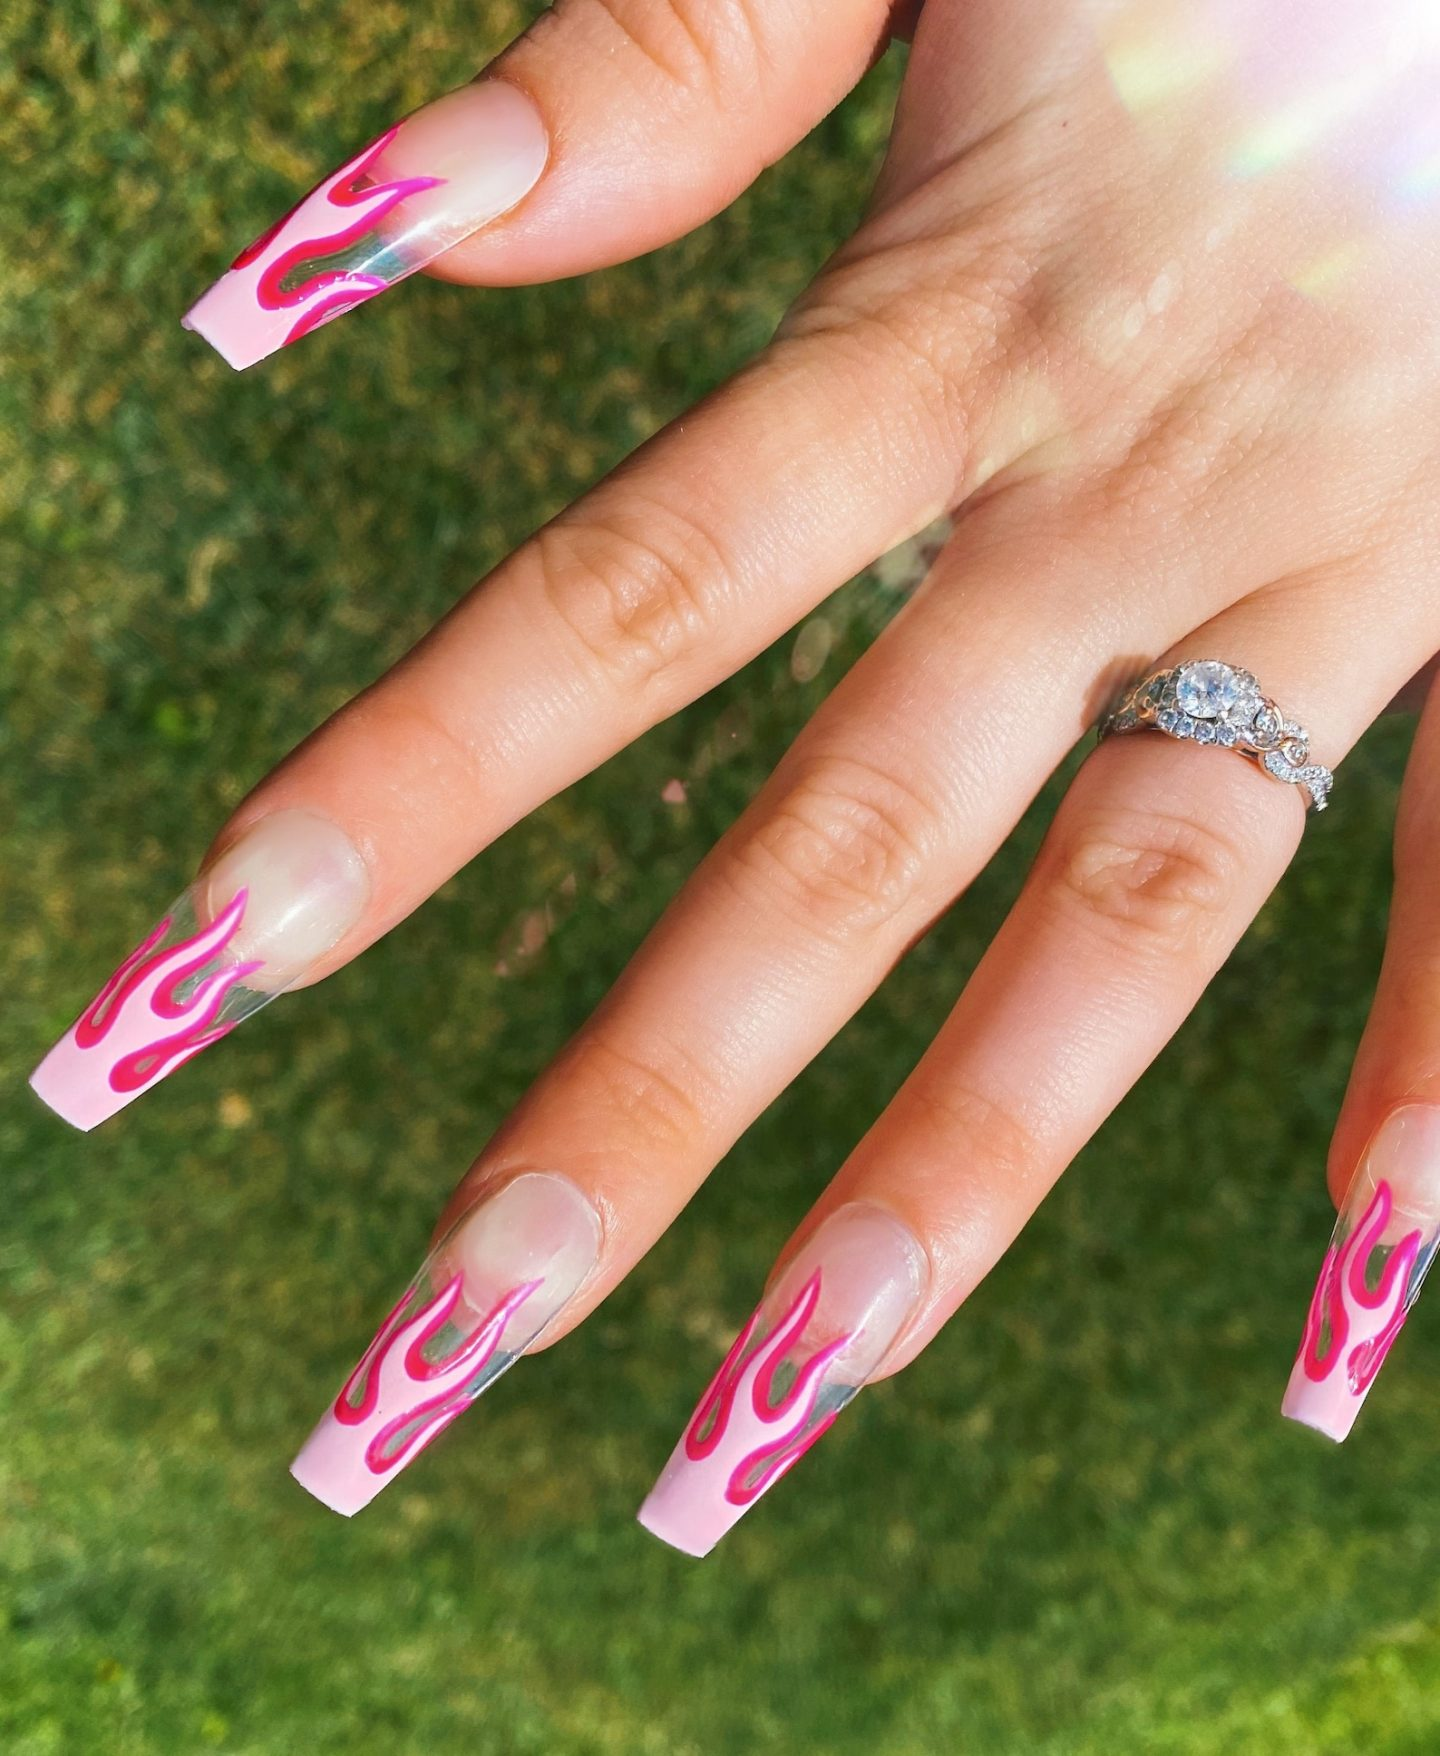 Baby pink flame nails